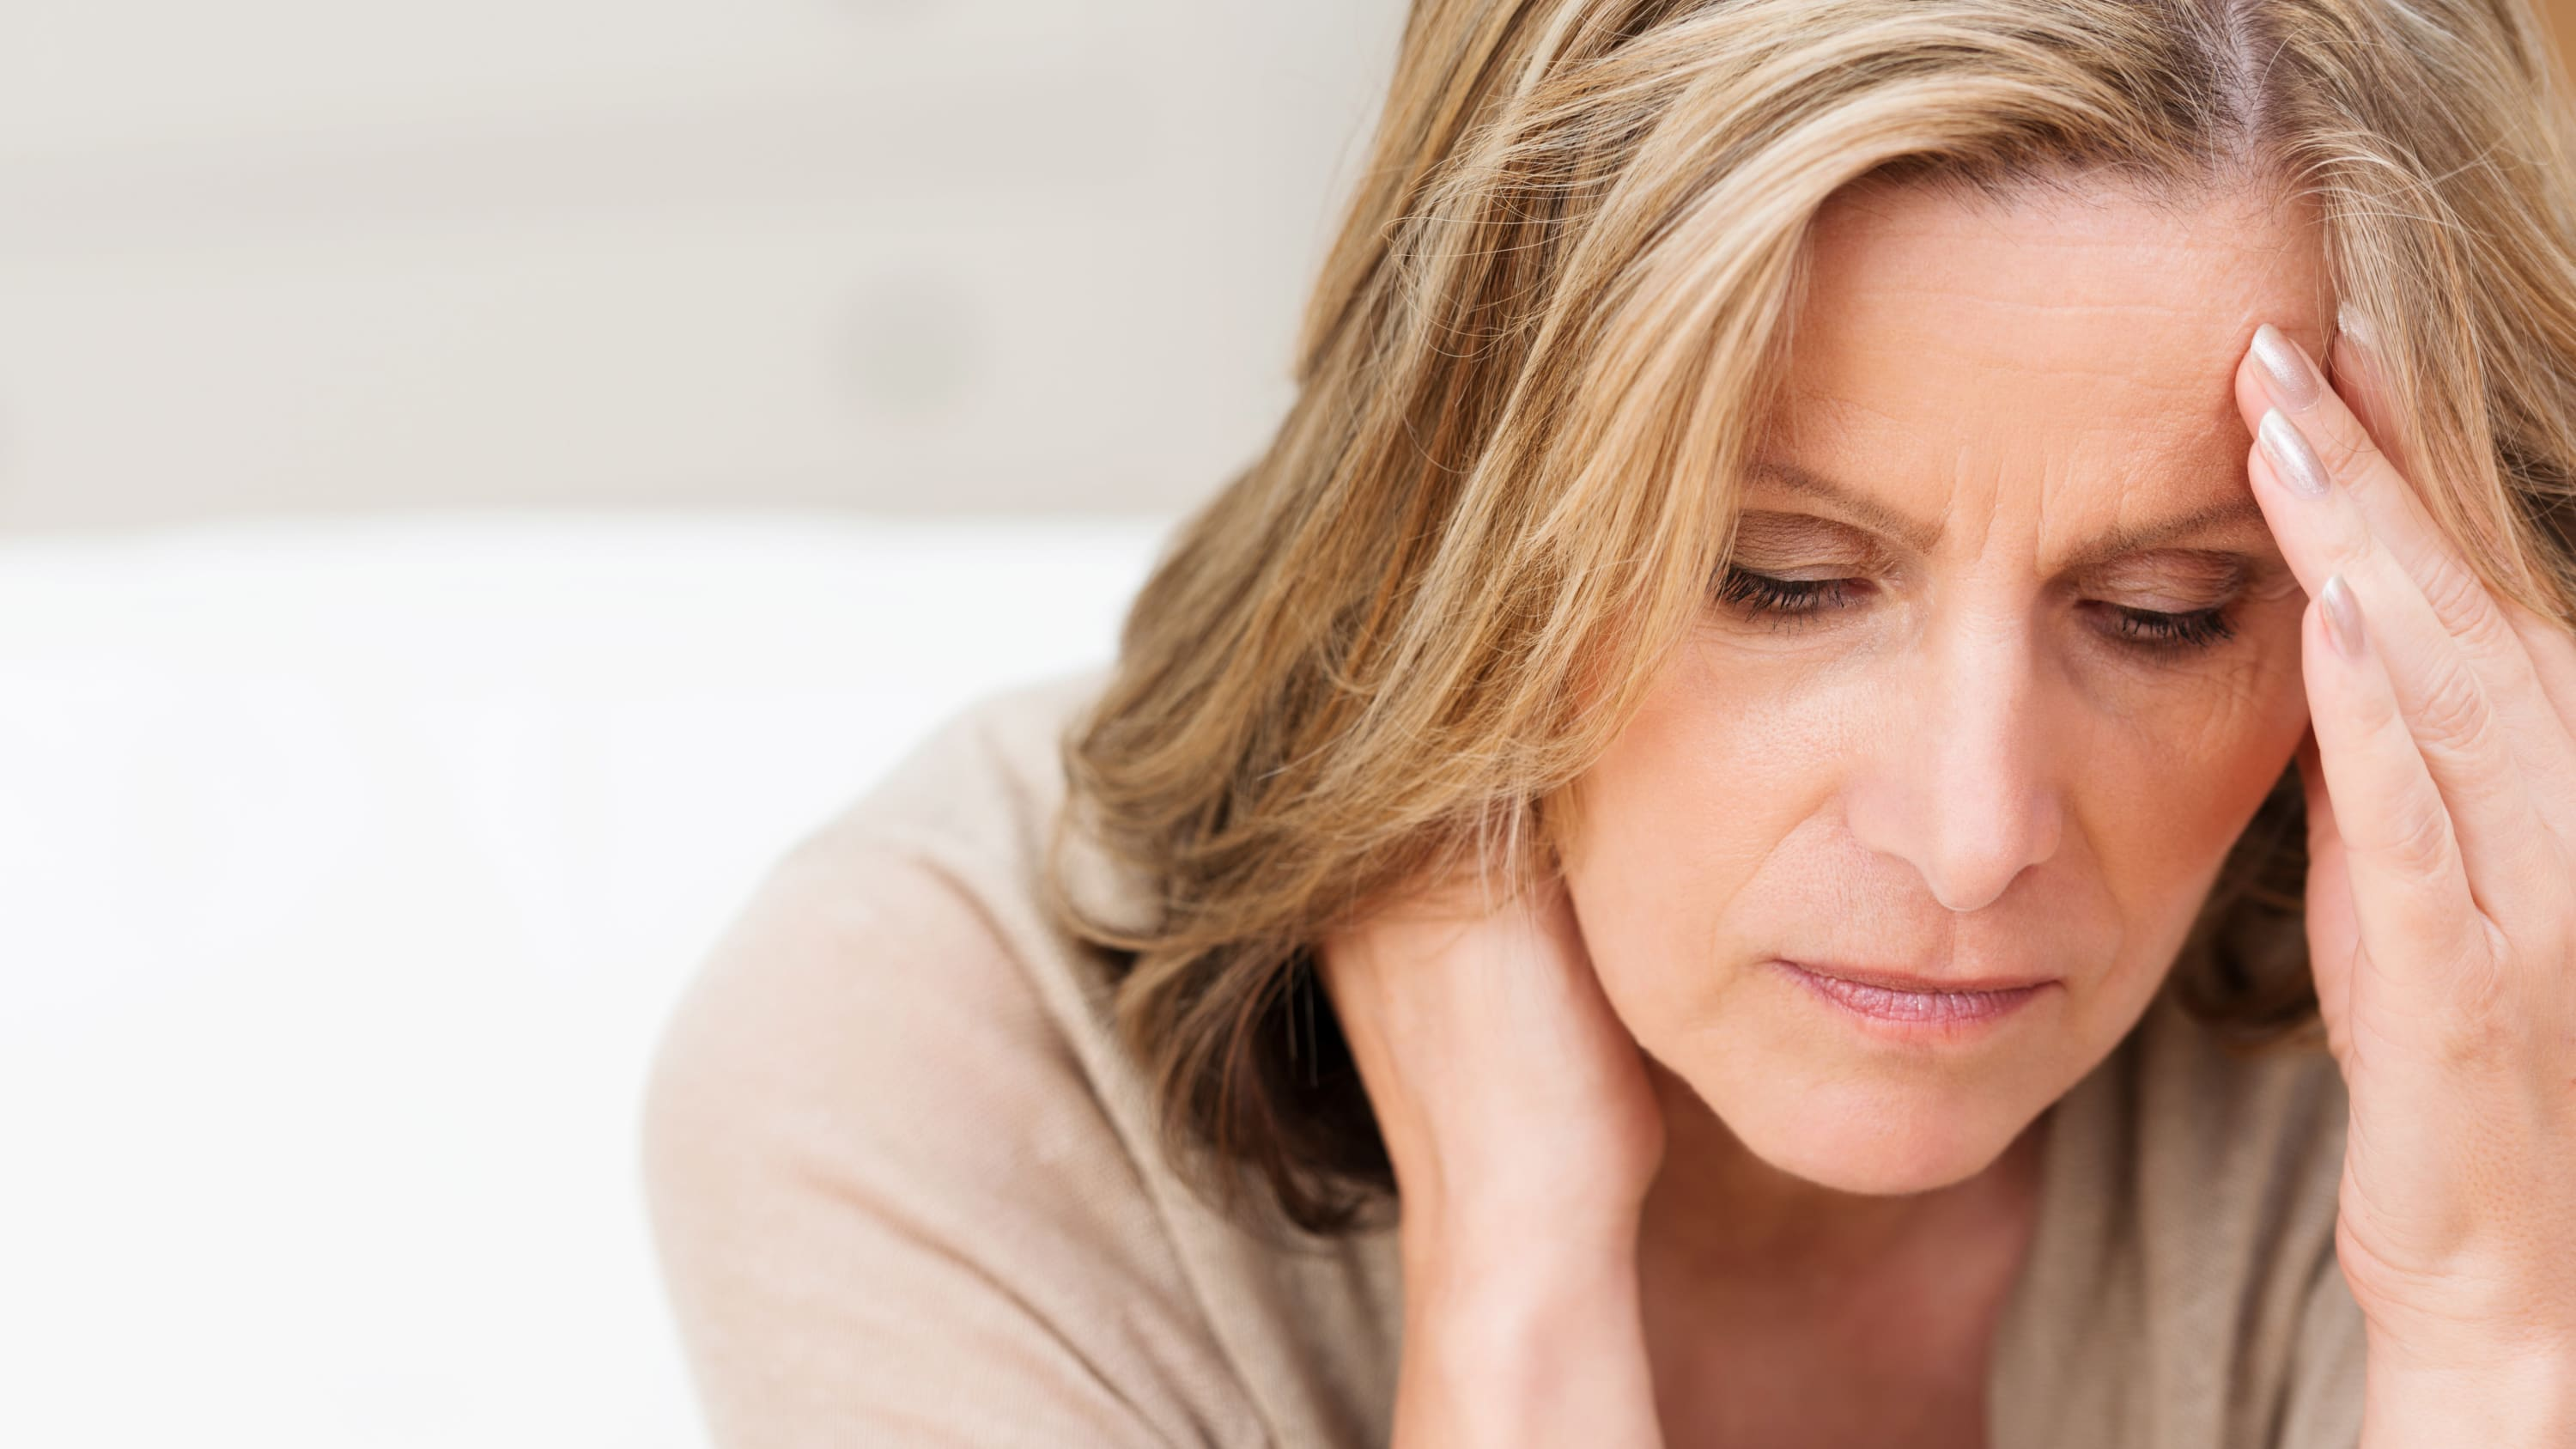 weary woman, possibly suffering from cancer-related fatigue